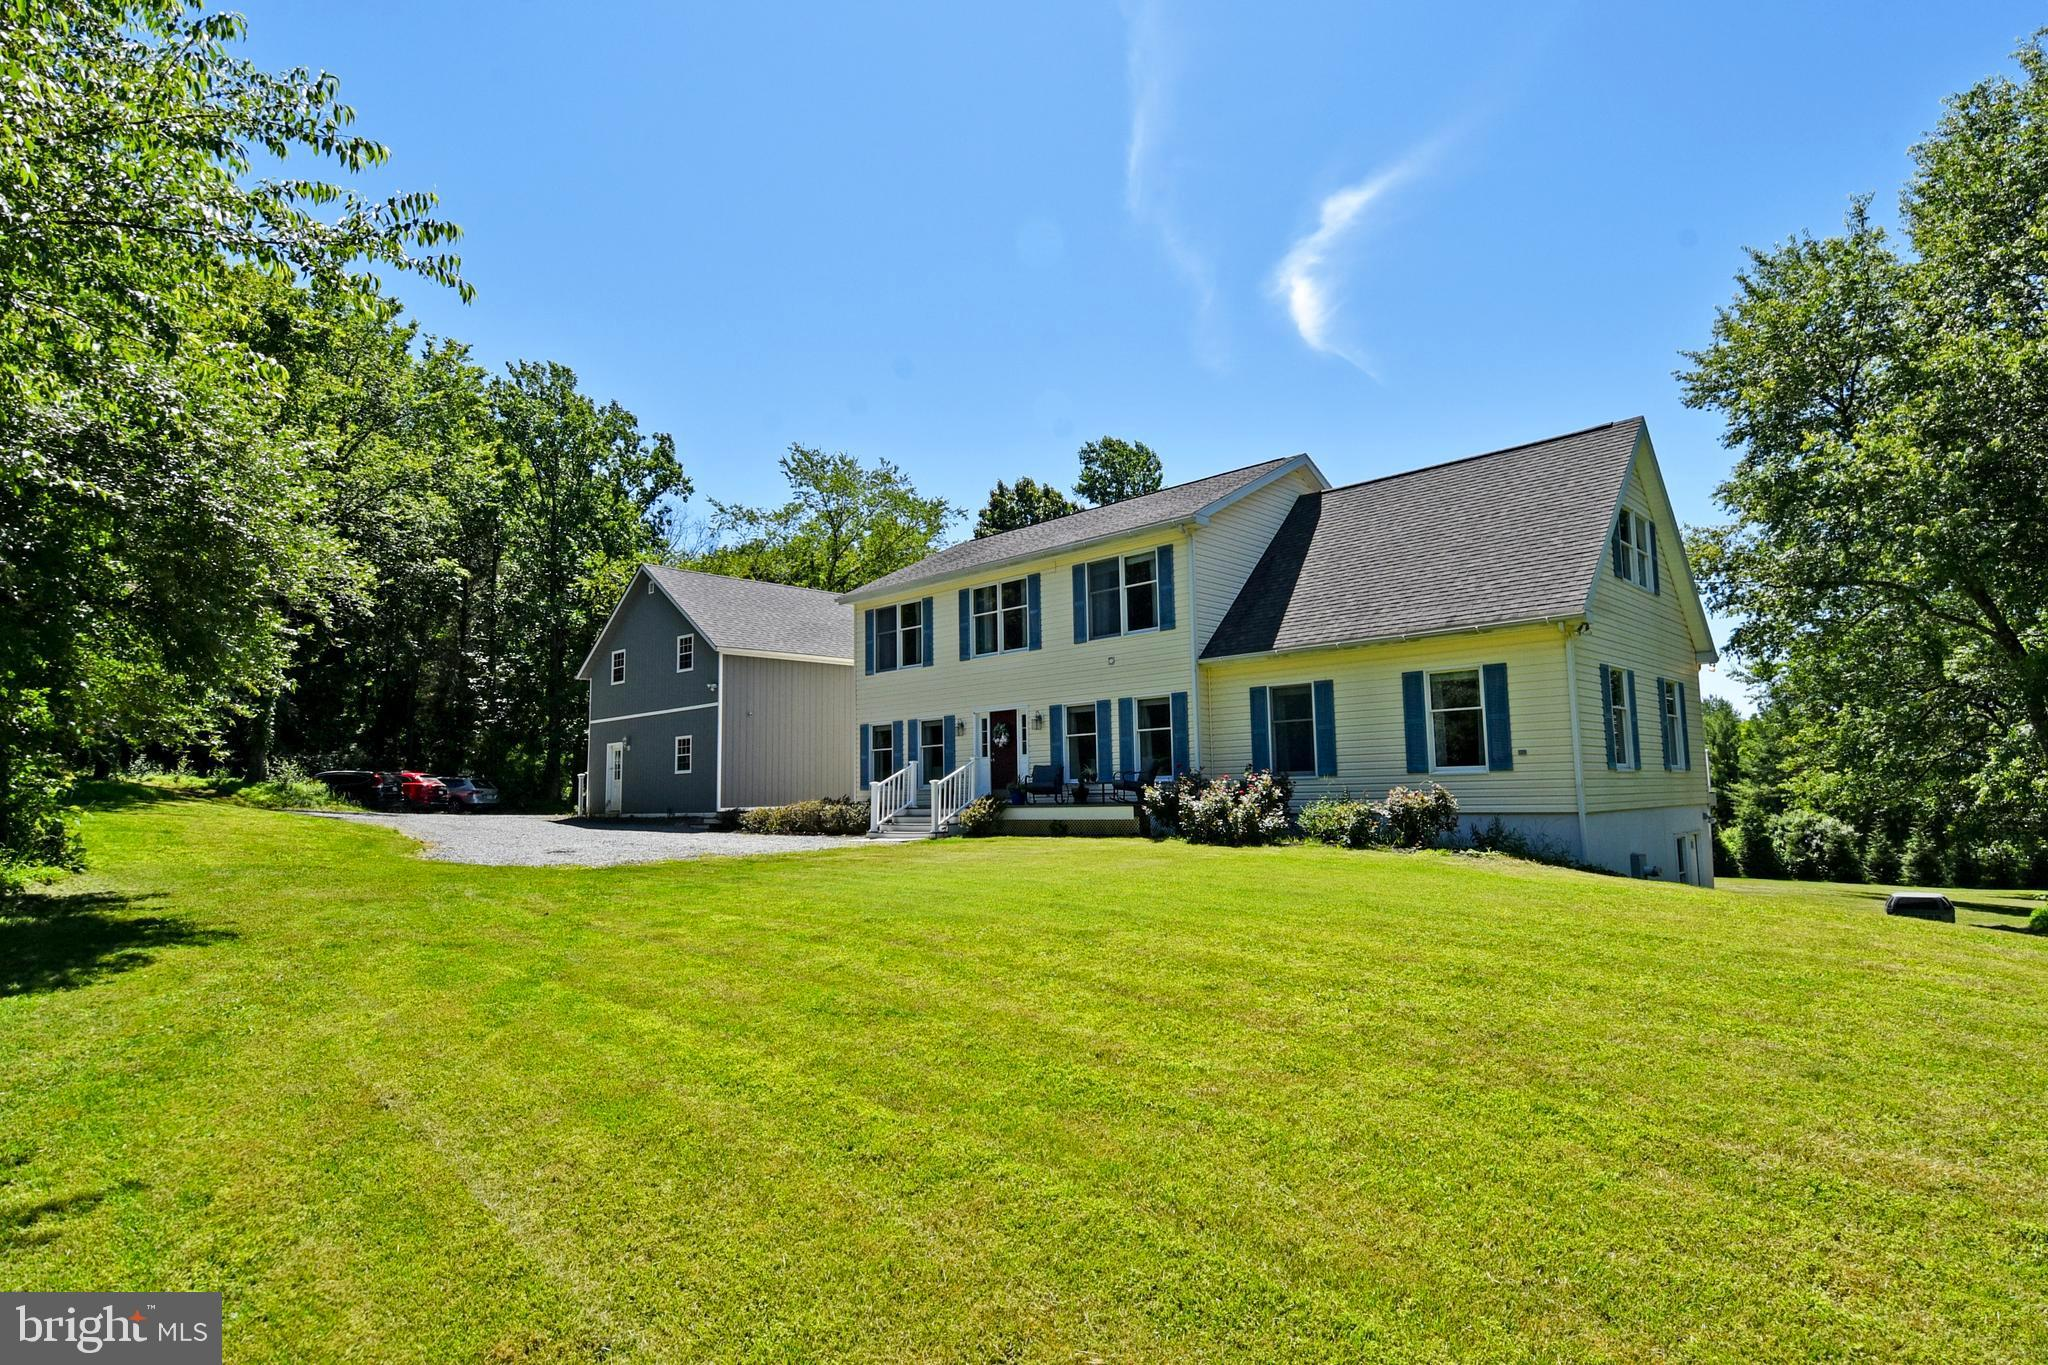 This 3+ acre property is nestled amongst mature trees and open space with beautiful, awe-inspiring v